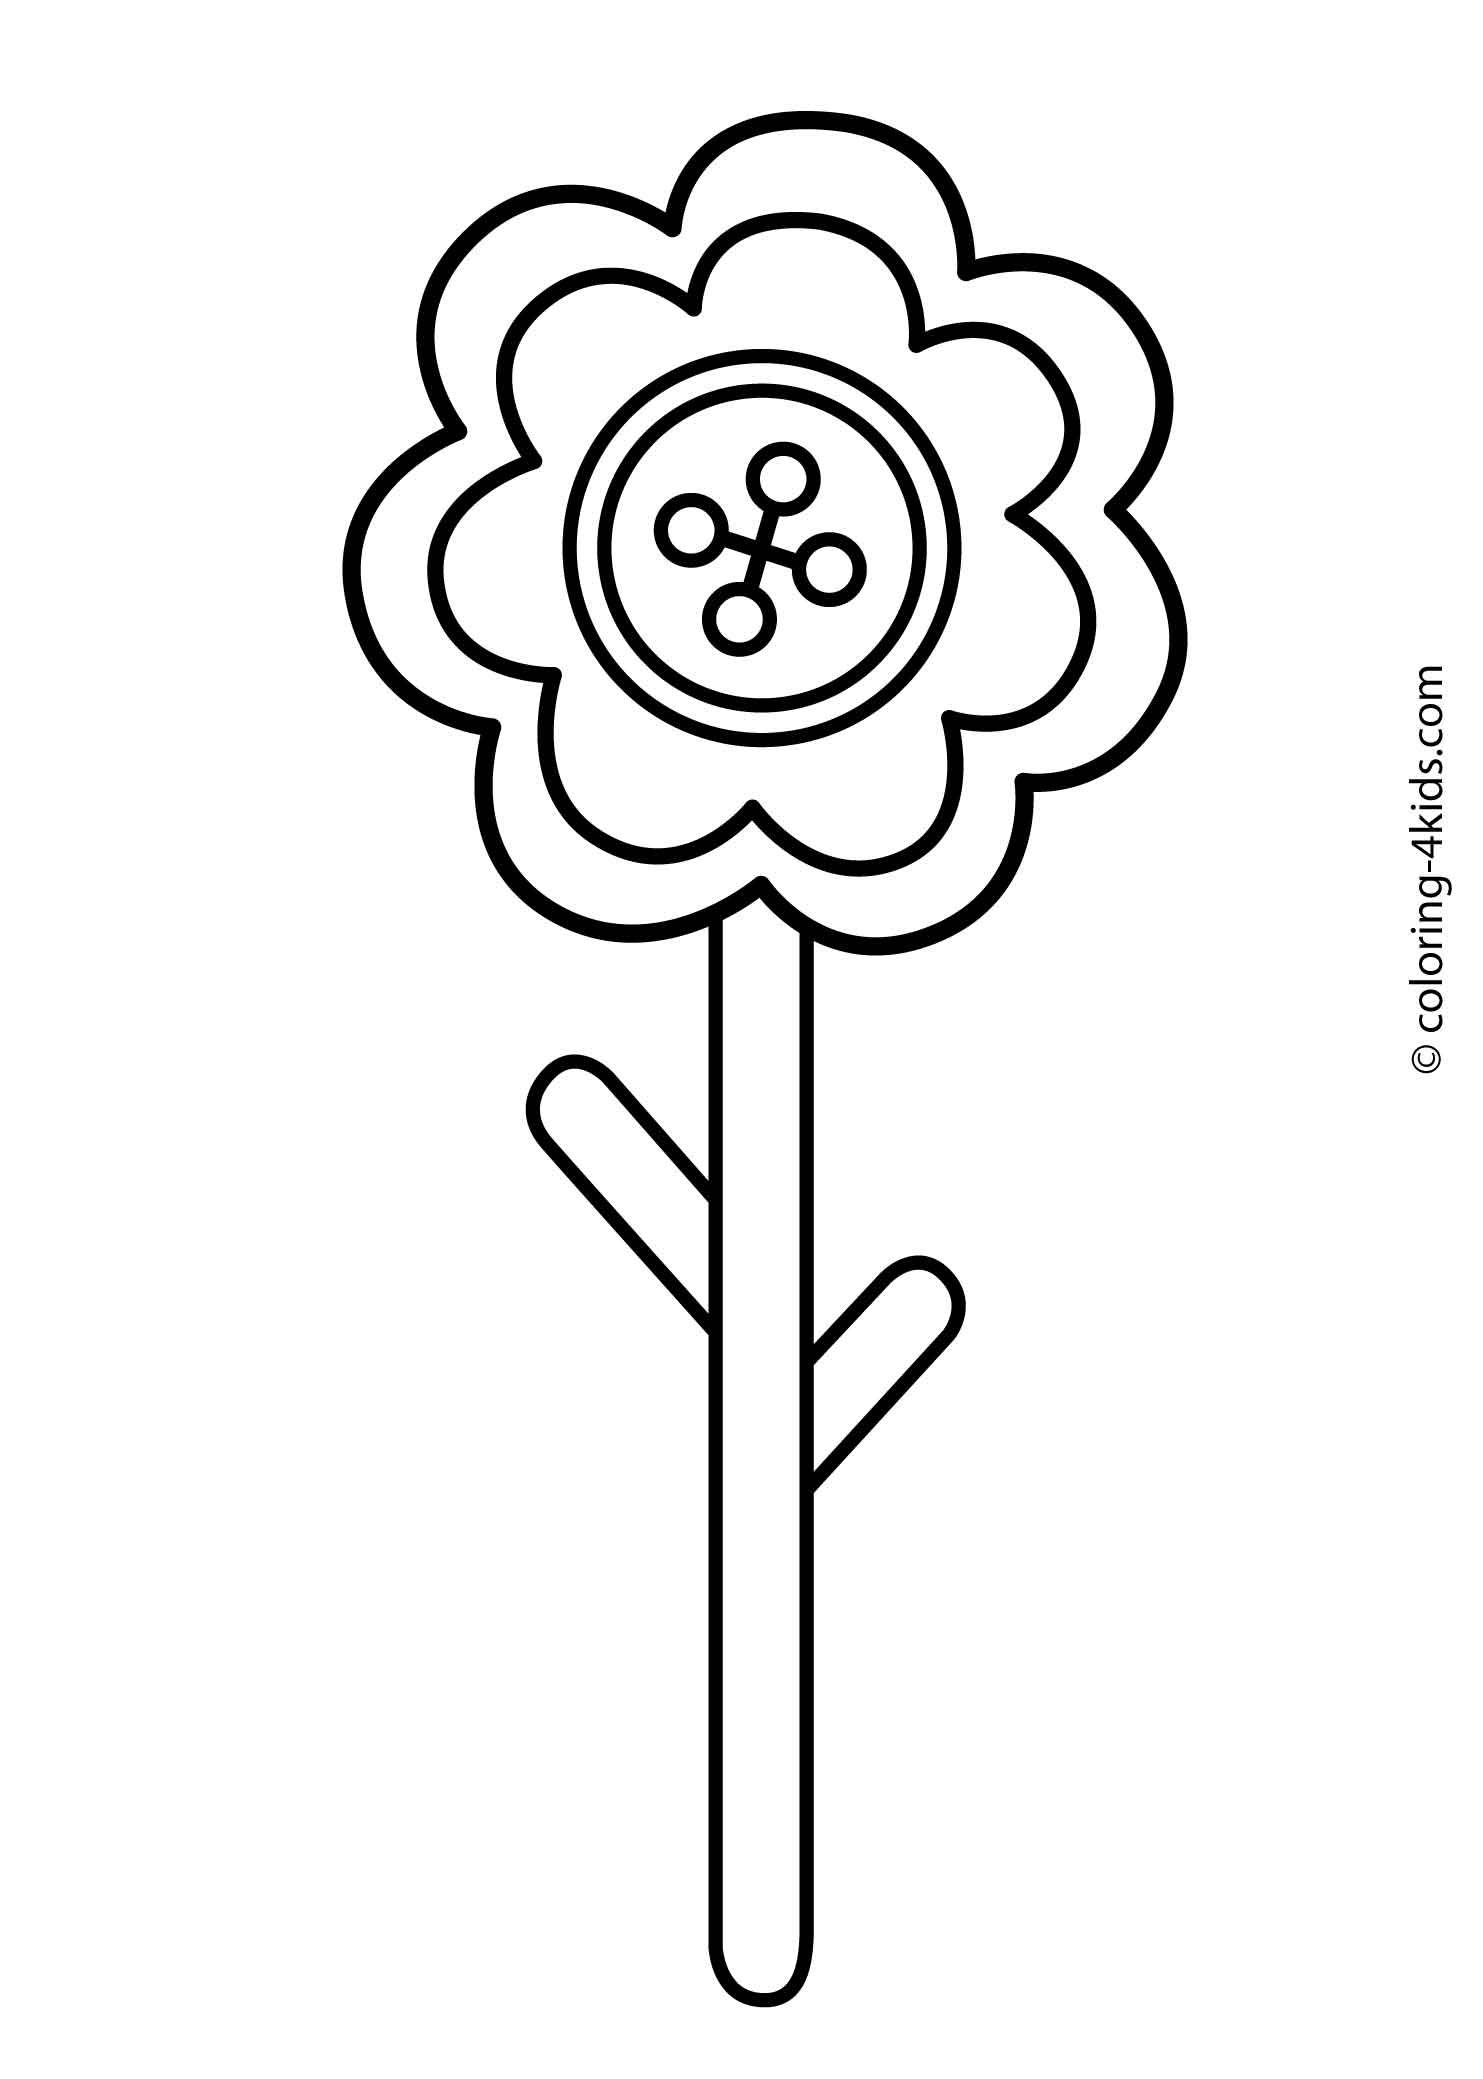 Flower Coloring Pages For Kids Printable 7 Coloring Pages Flower Coloring Pages Coloring Pages For Kids